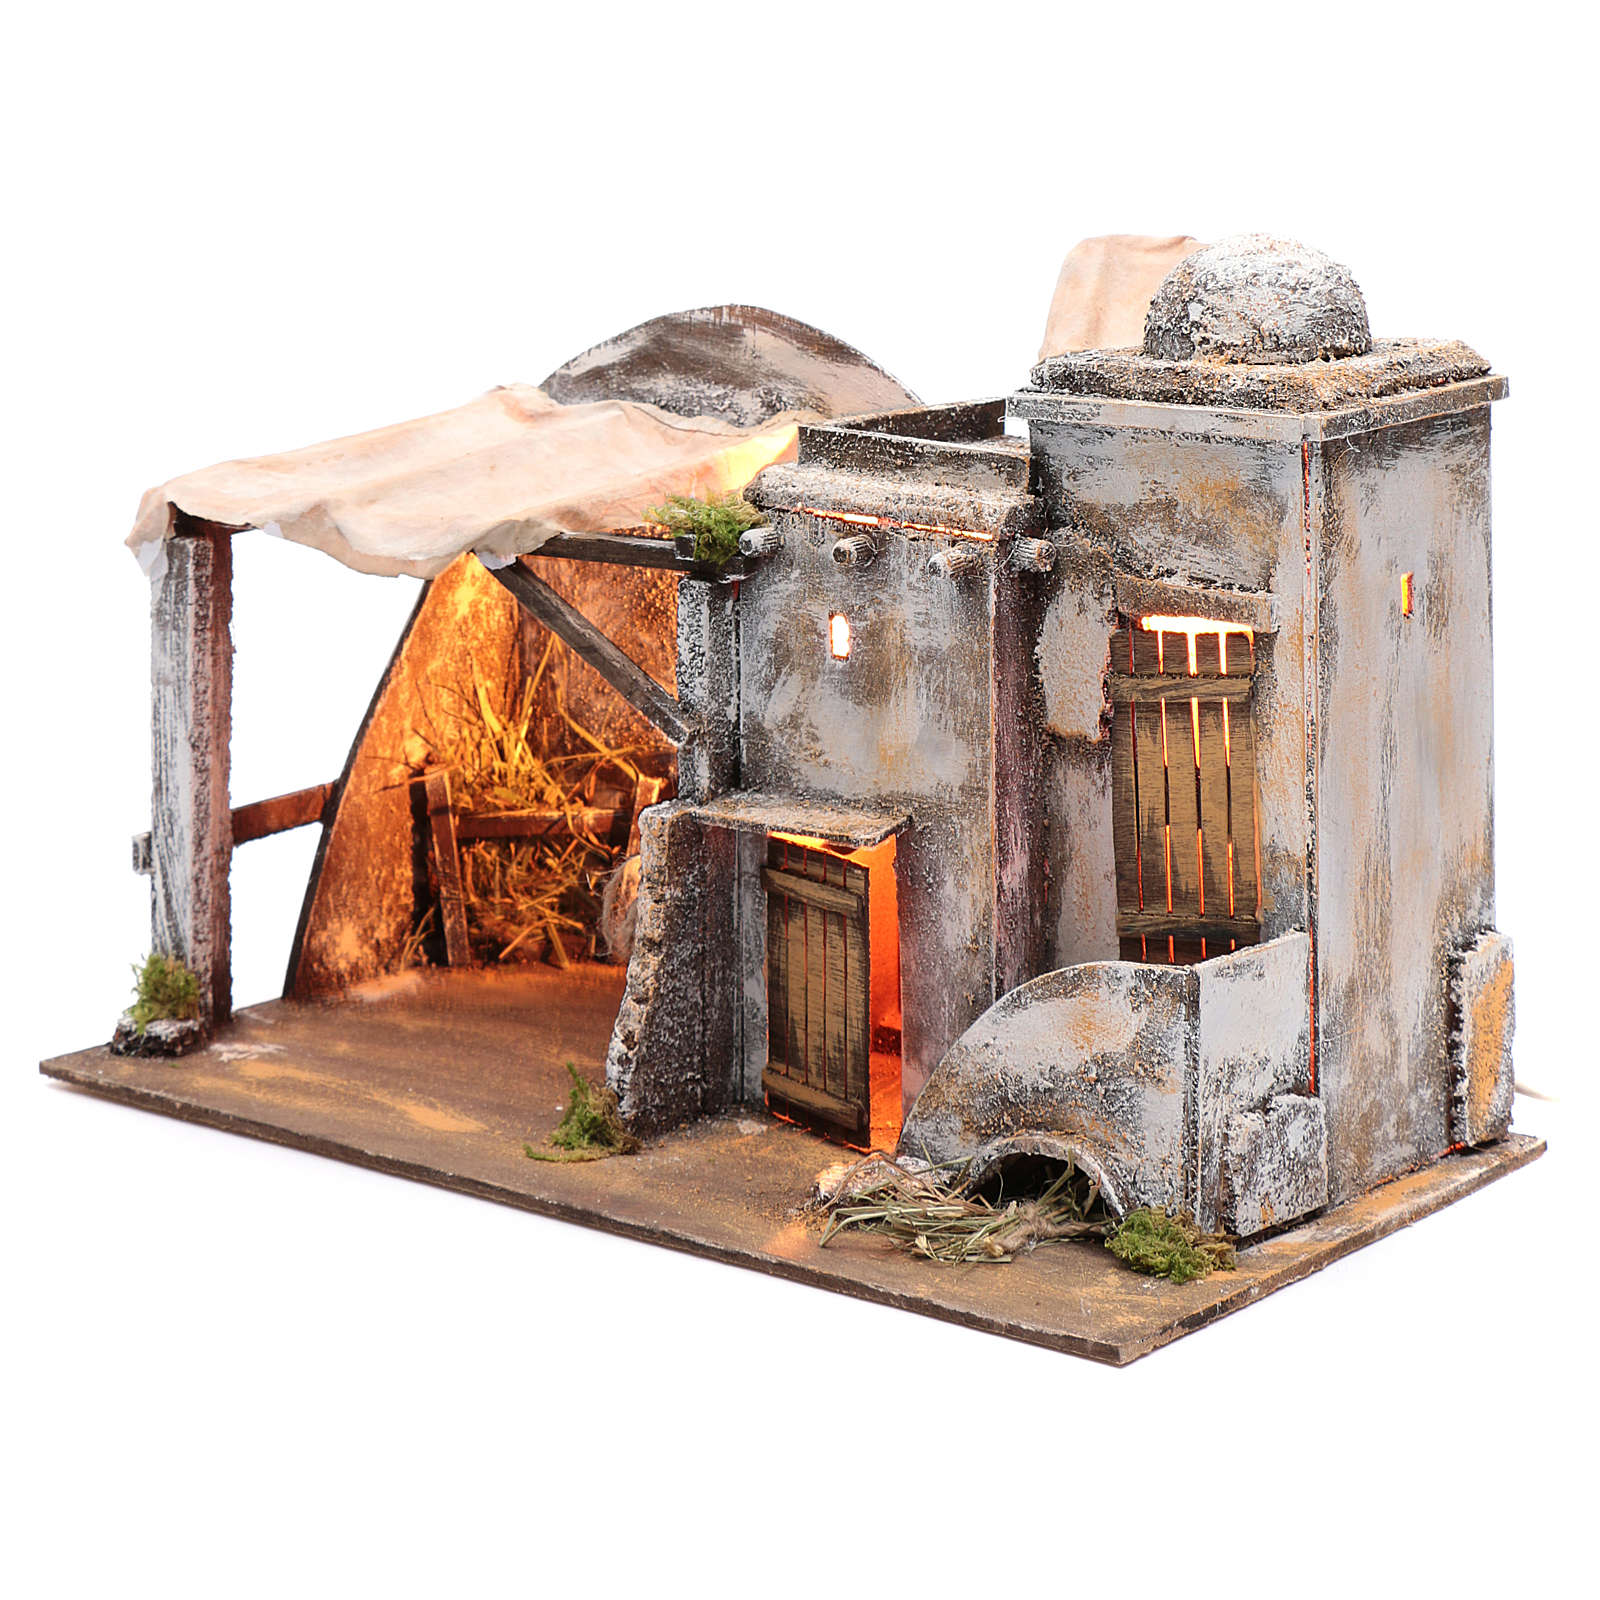 Arabian nativity scene setting with hut  30x40x25 cm Neapolitan nativity scene 4